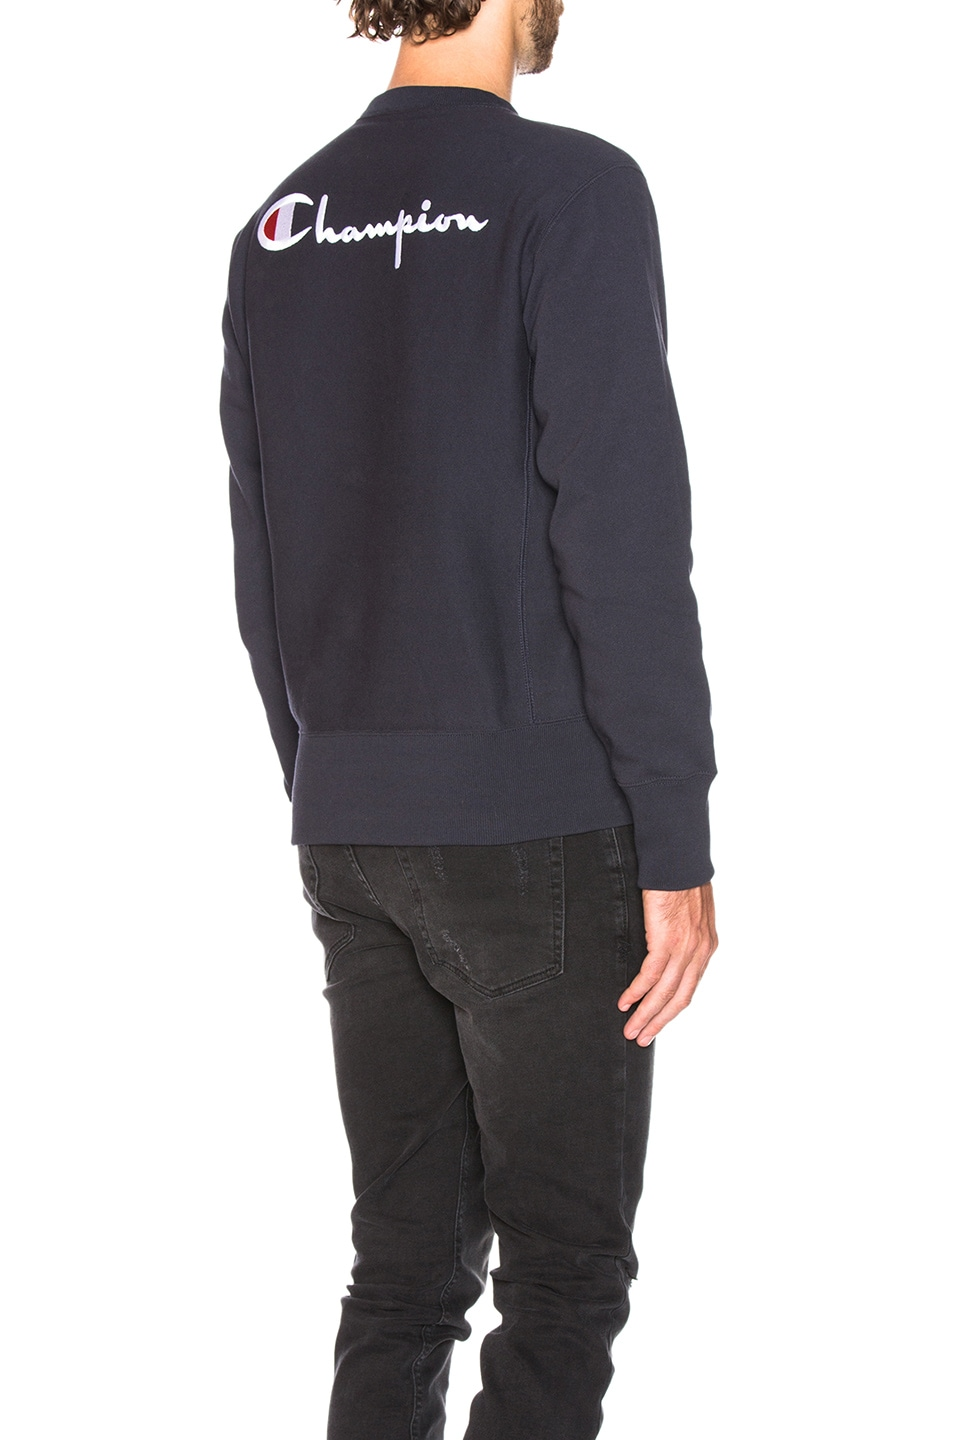 Image 1 of Champion Reverse Weave Crewneck Sweatshirt in Navy